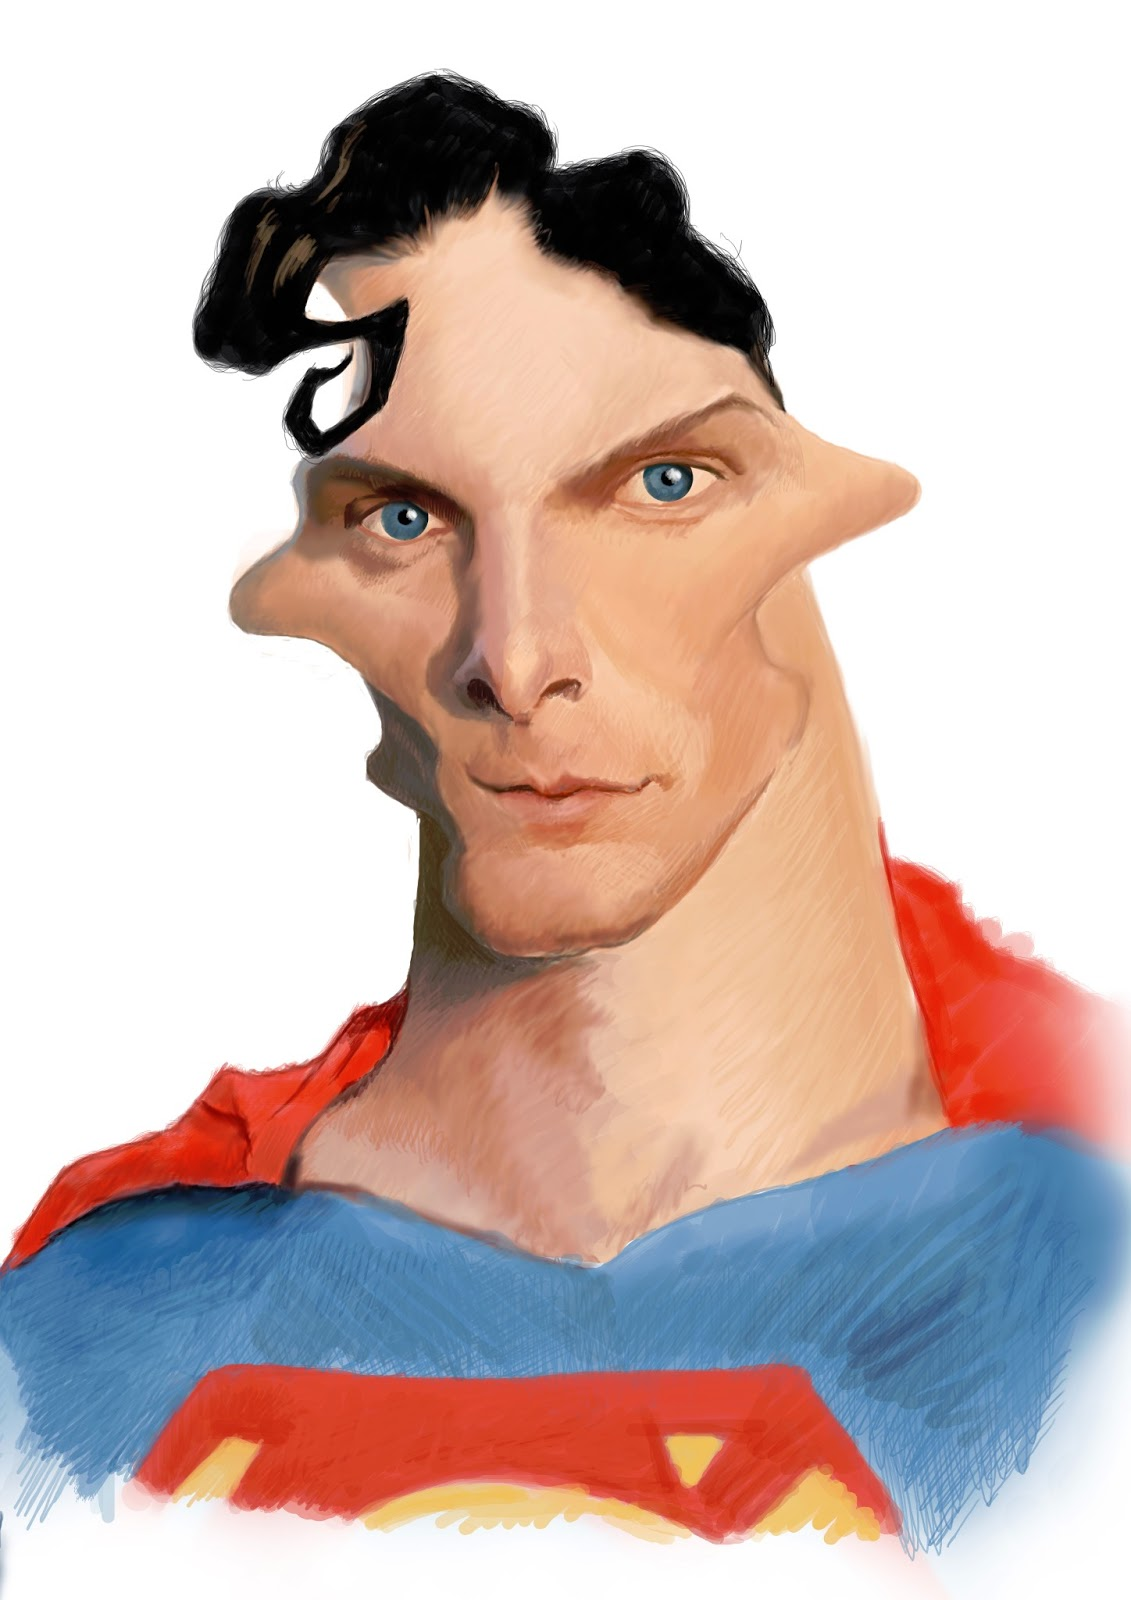 Steve roberts caricatures 2013 superman caricature for wittygraphy voltagebd Images